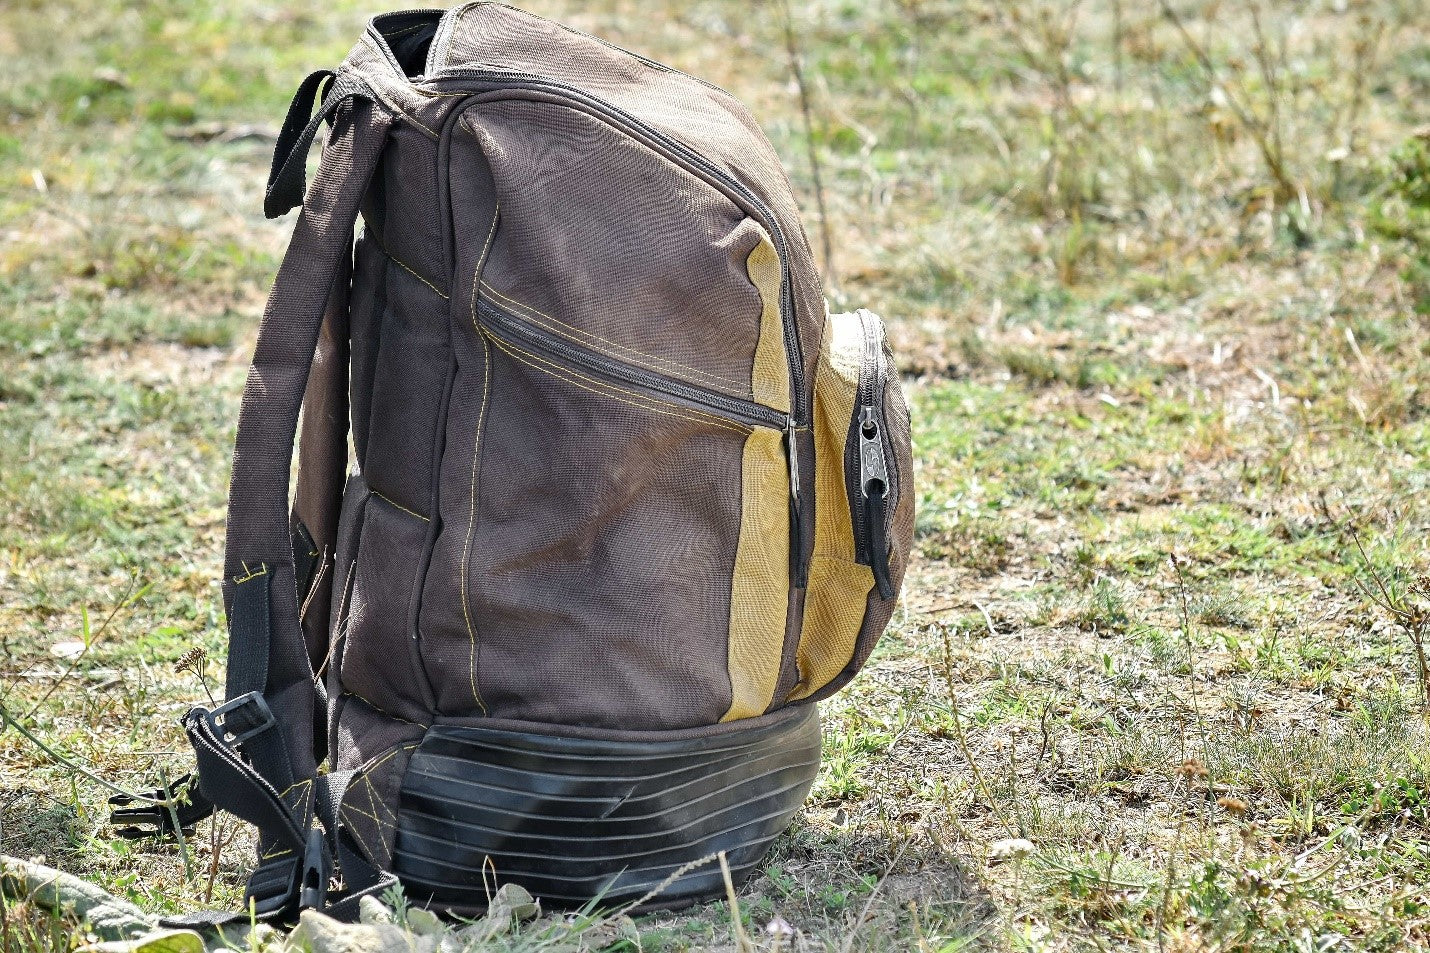 5 Cleaning Tips for Your Backpack and Other Hiking Gear